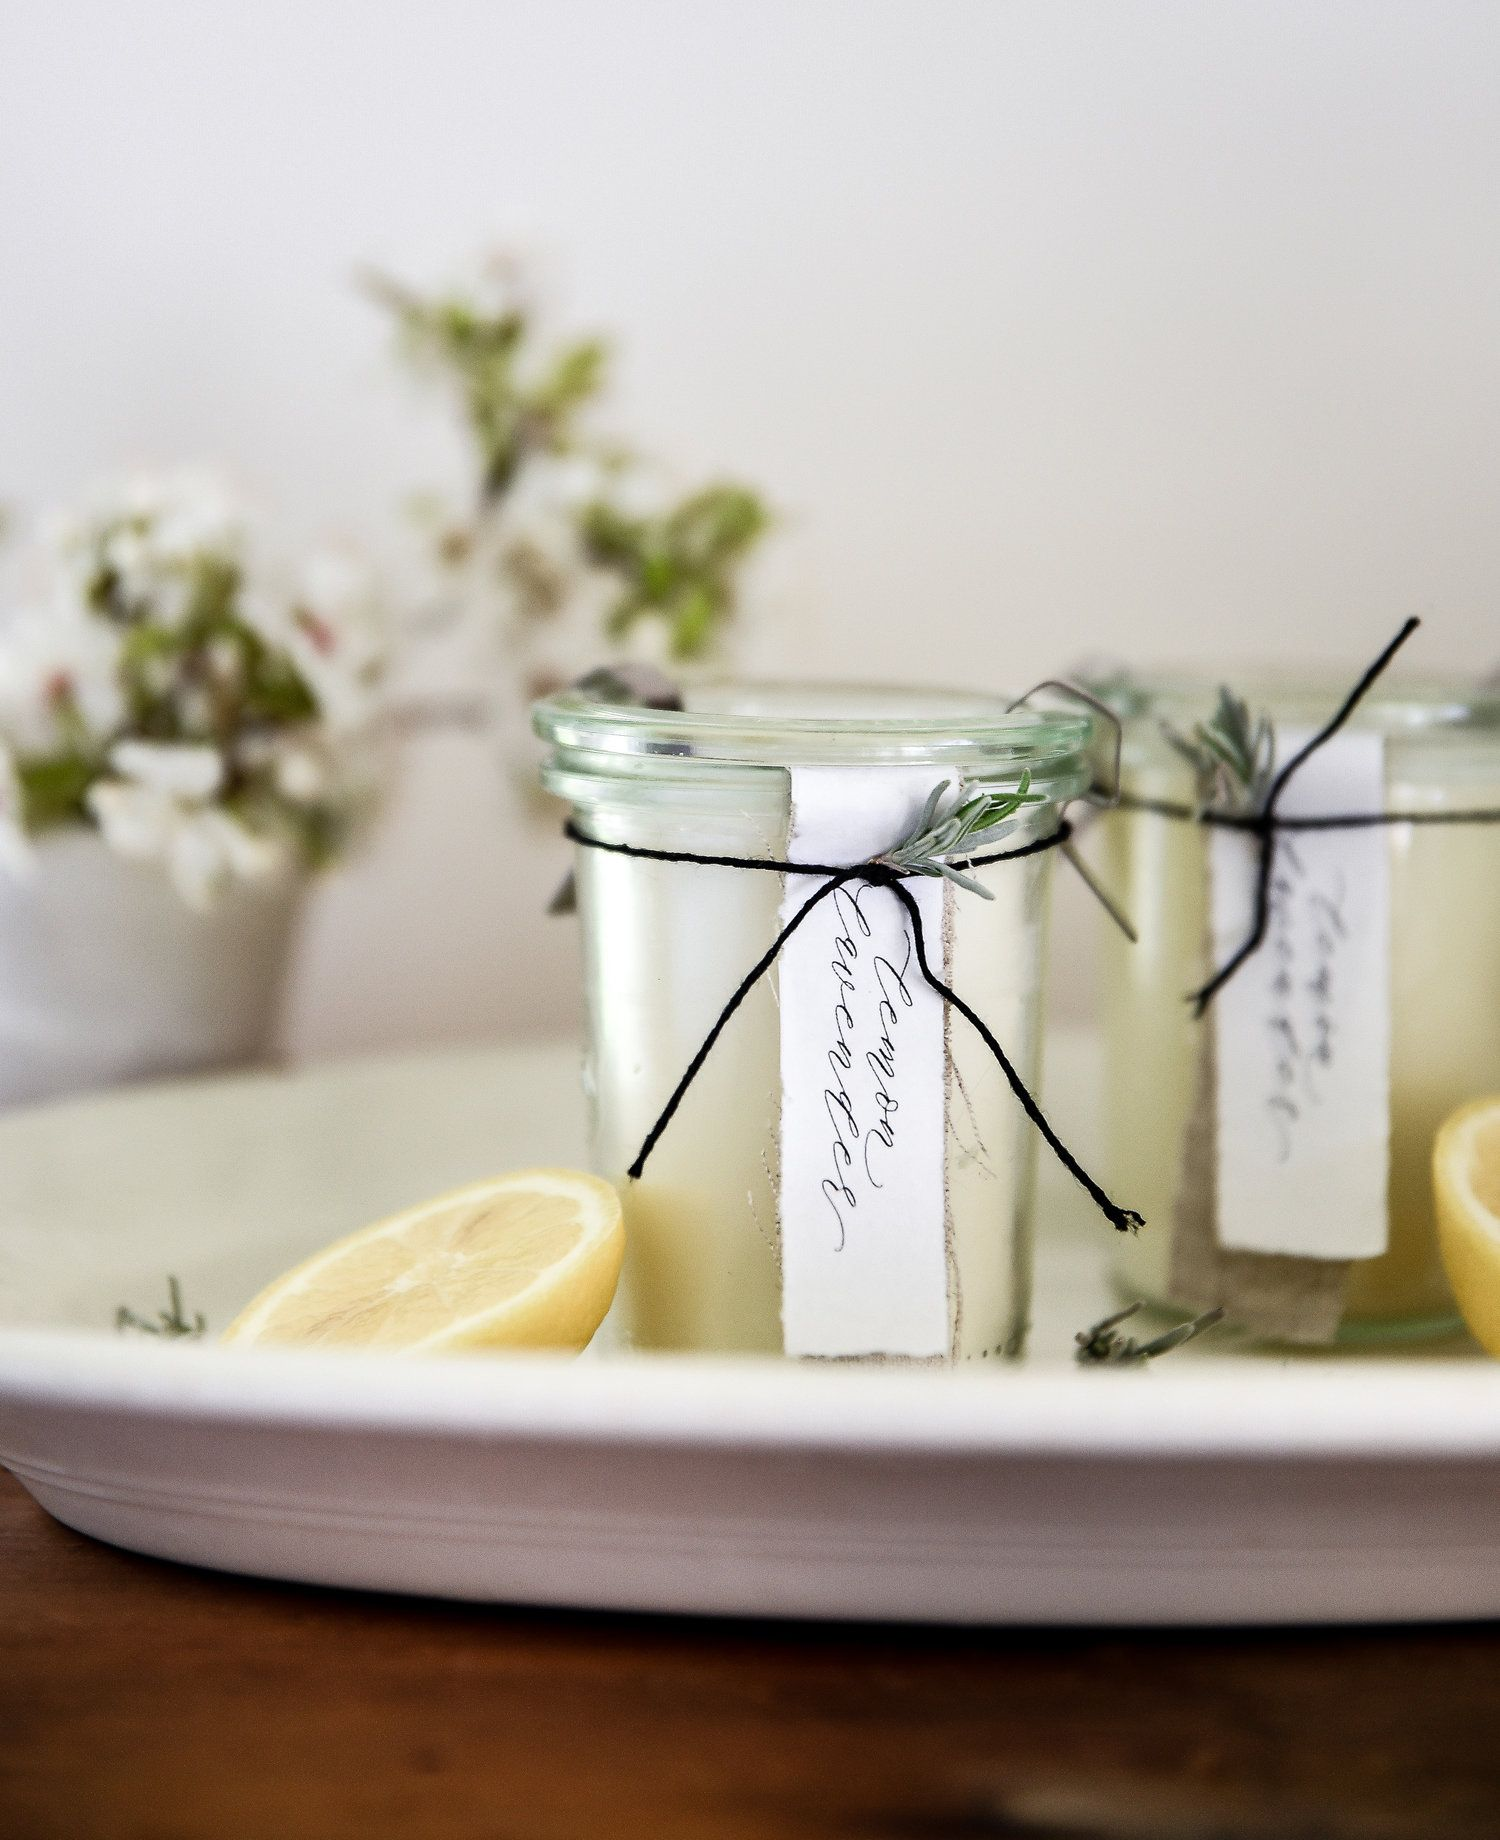 Homemade Candles with Essential Oils Homemade candles